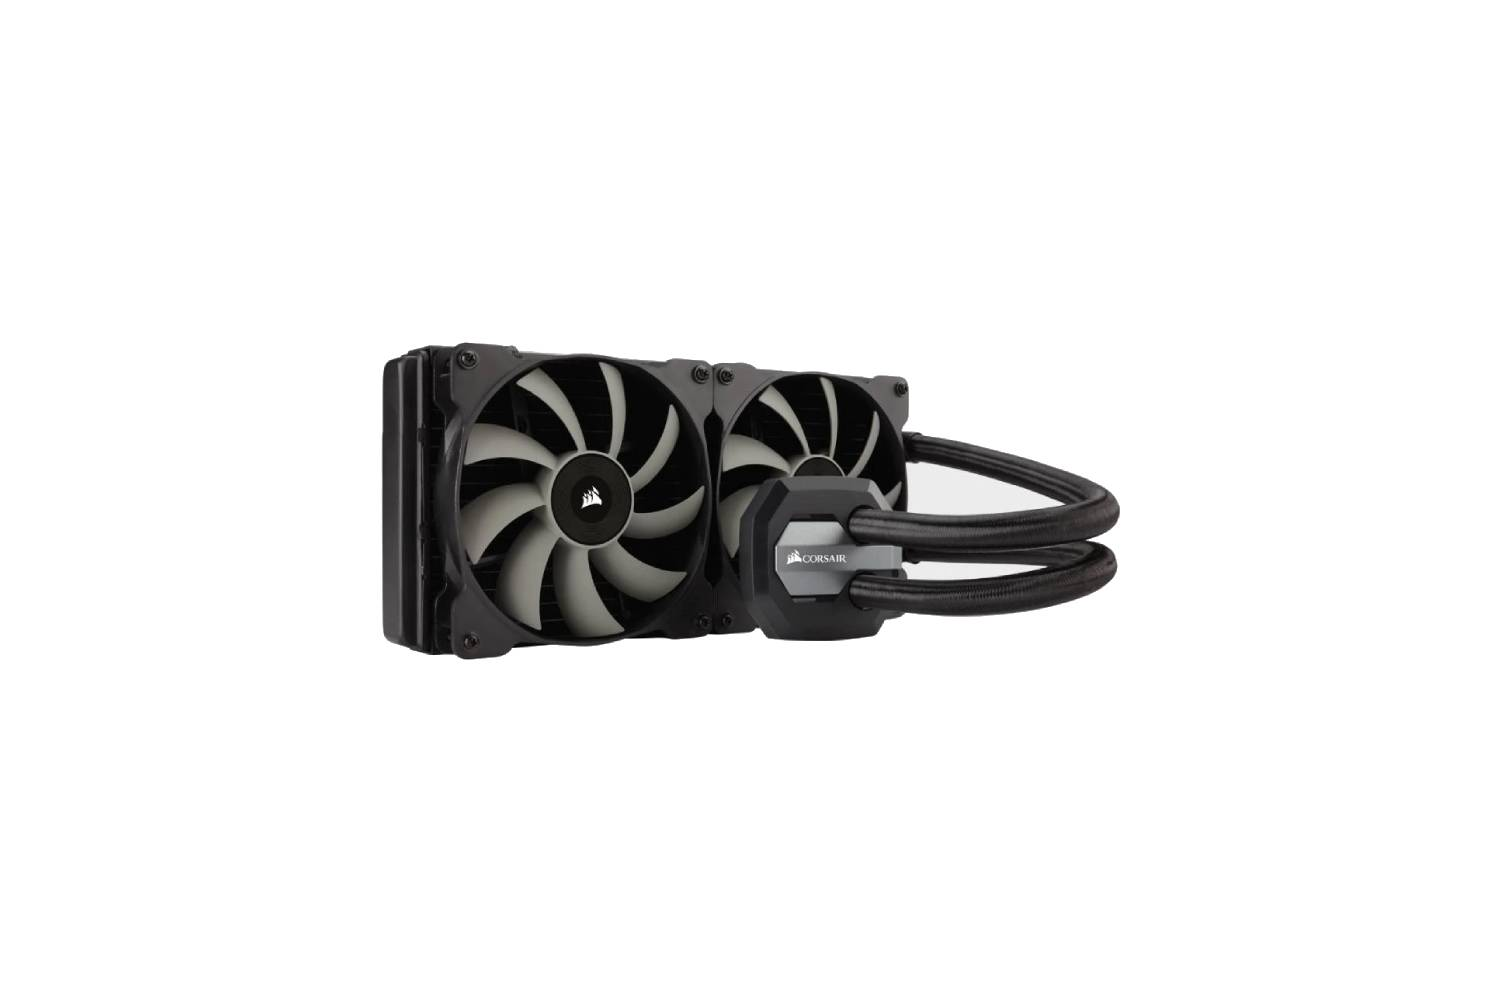 Corsair Hydro Series CORSAIR H115i LIQUID CPU Cooler